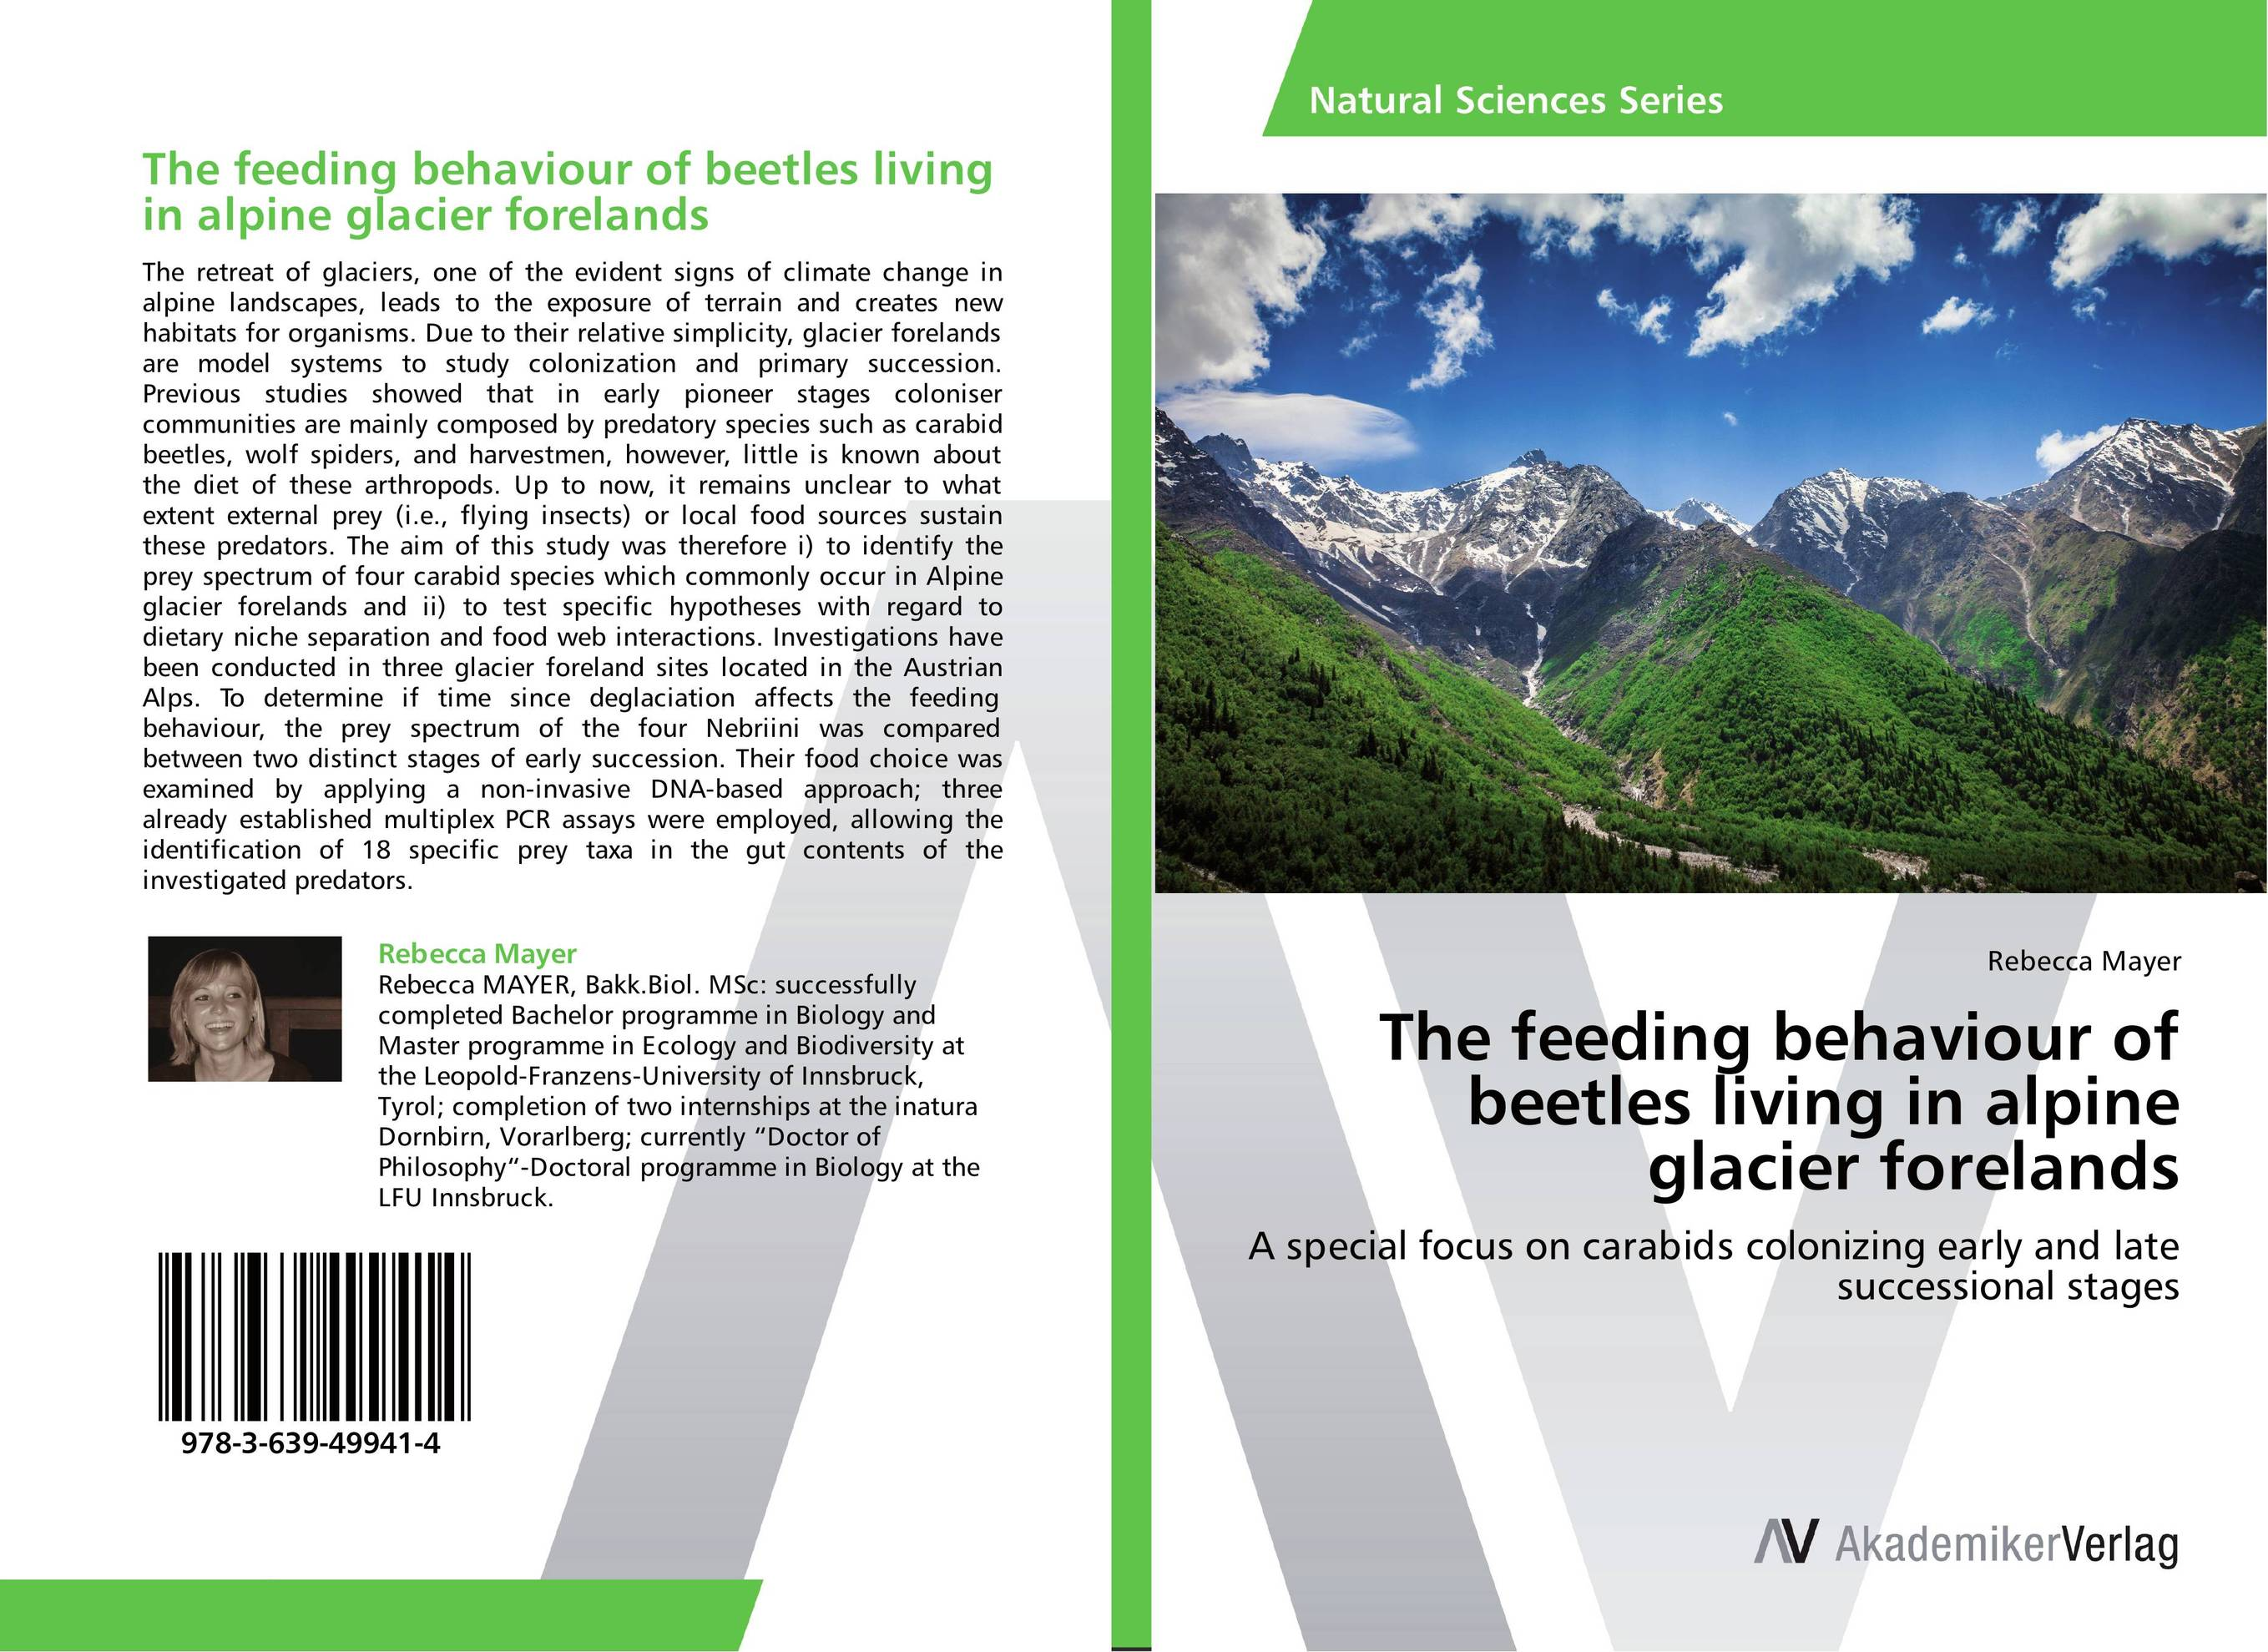 The feeding behaviour of beetles living in alpine glacier forelands